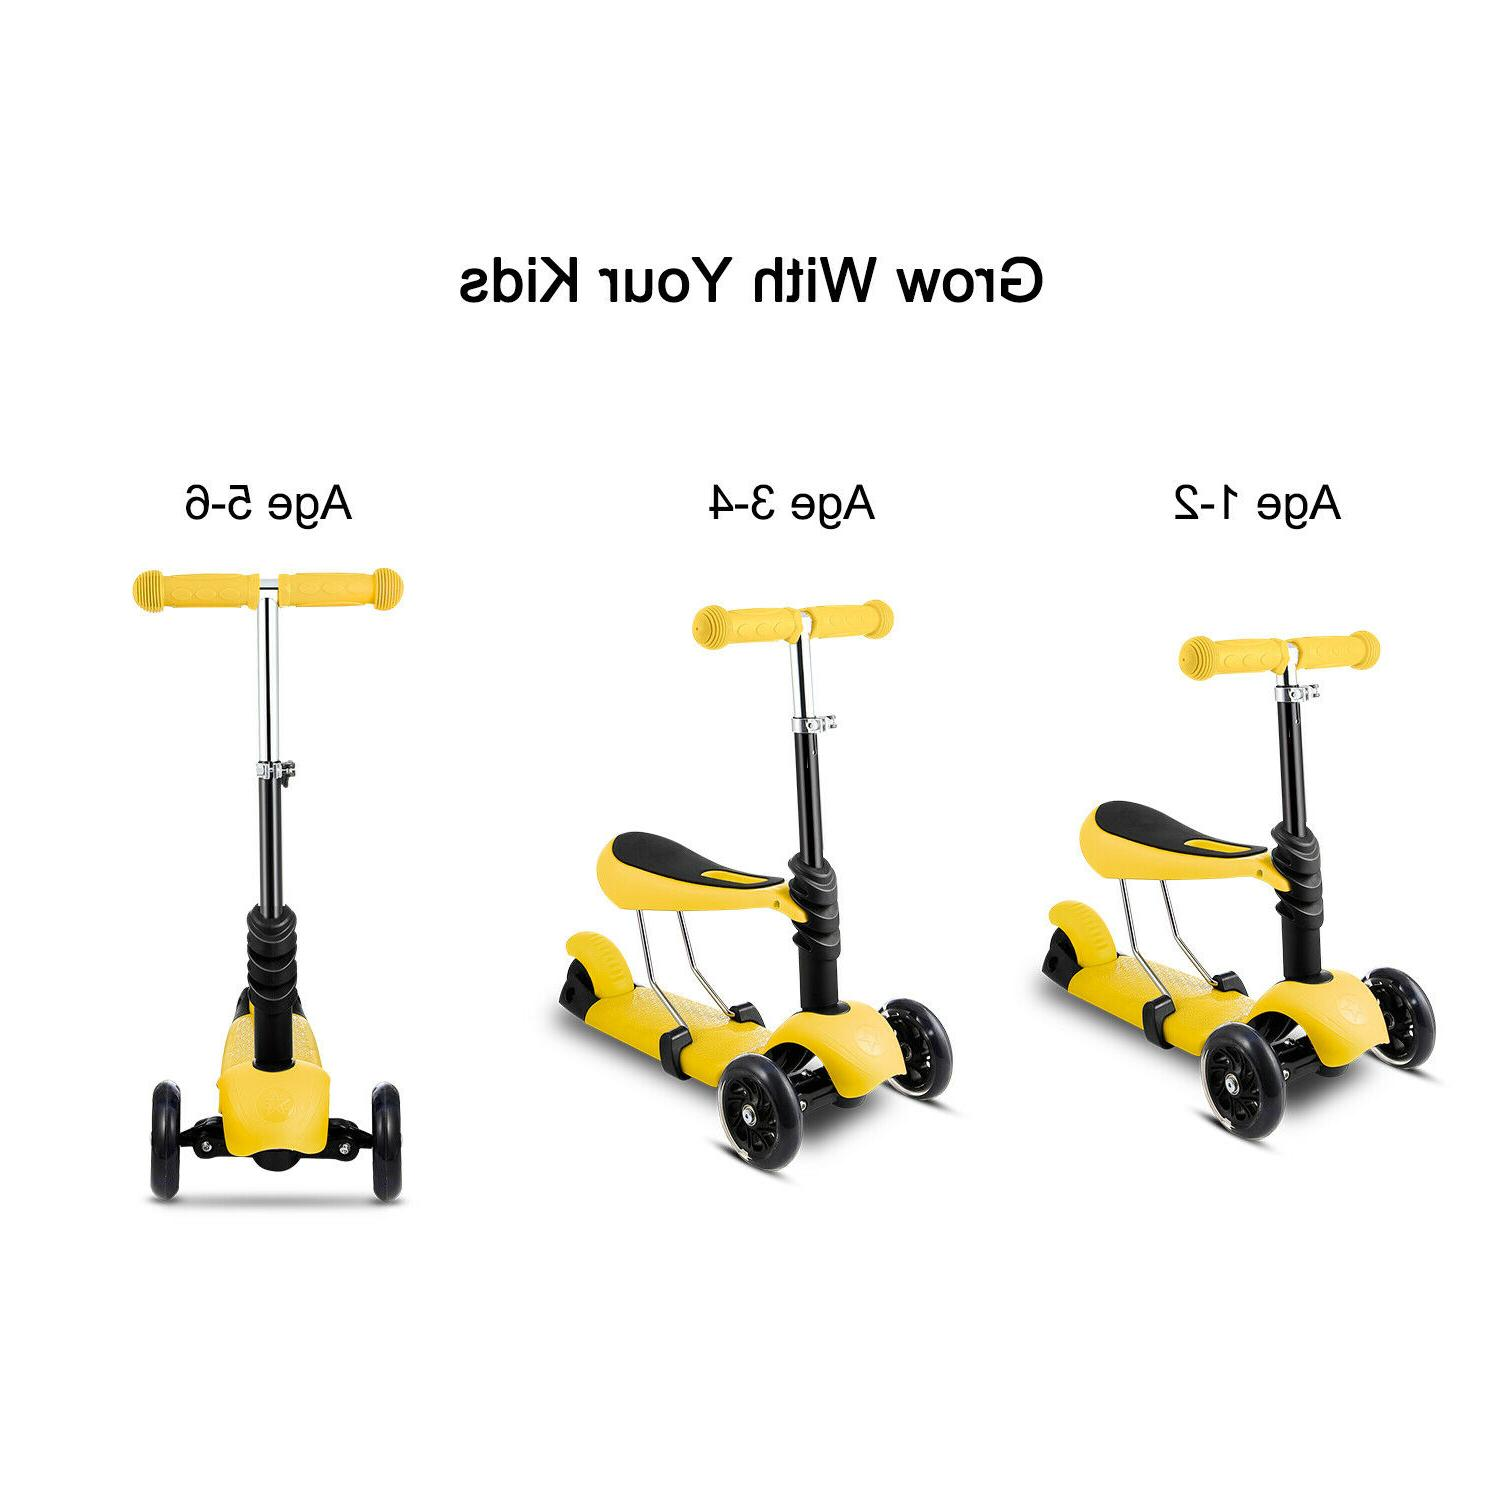 New Kick Kids with 3 Big Light Up Adjustable Height in 1